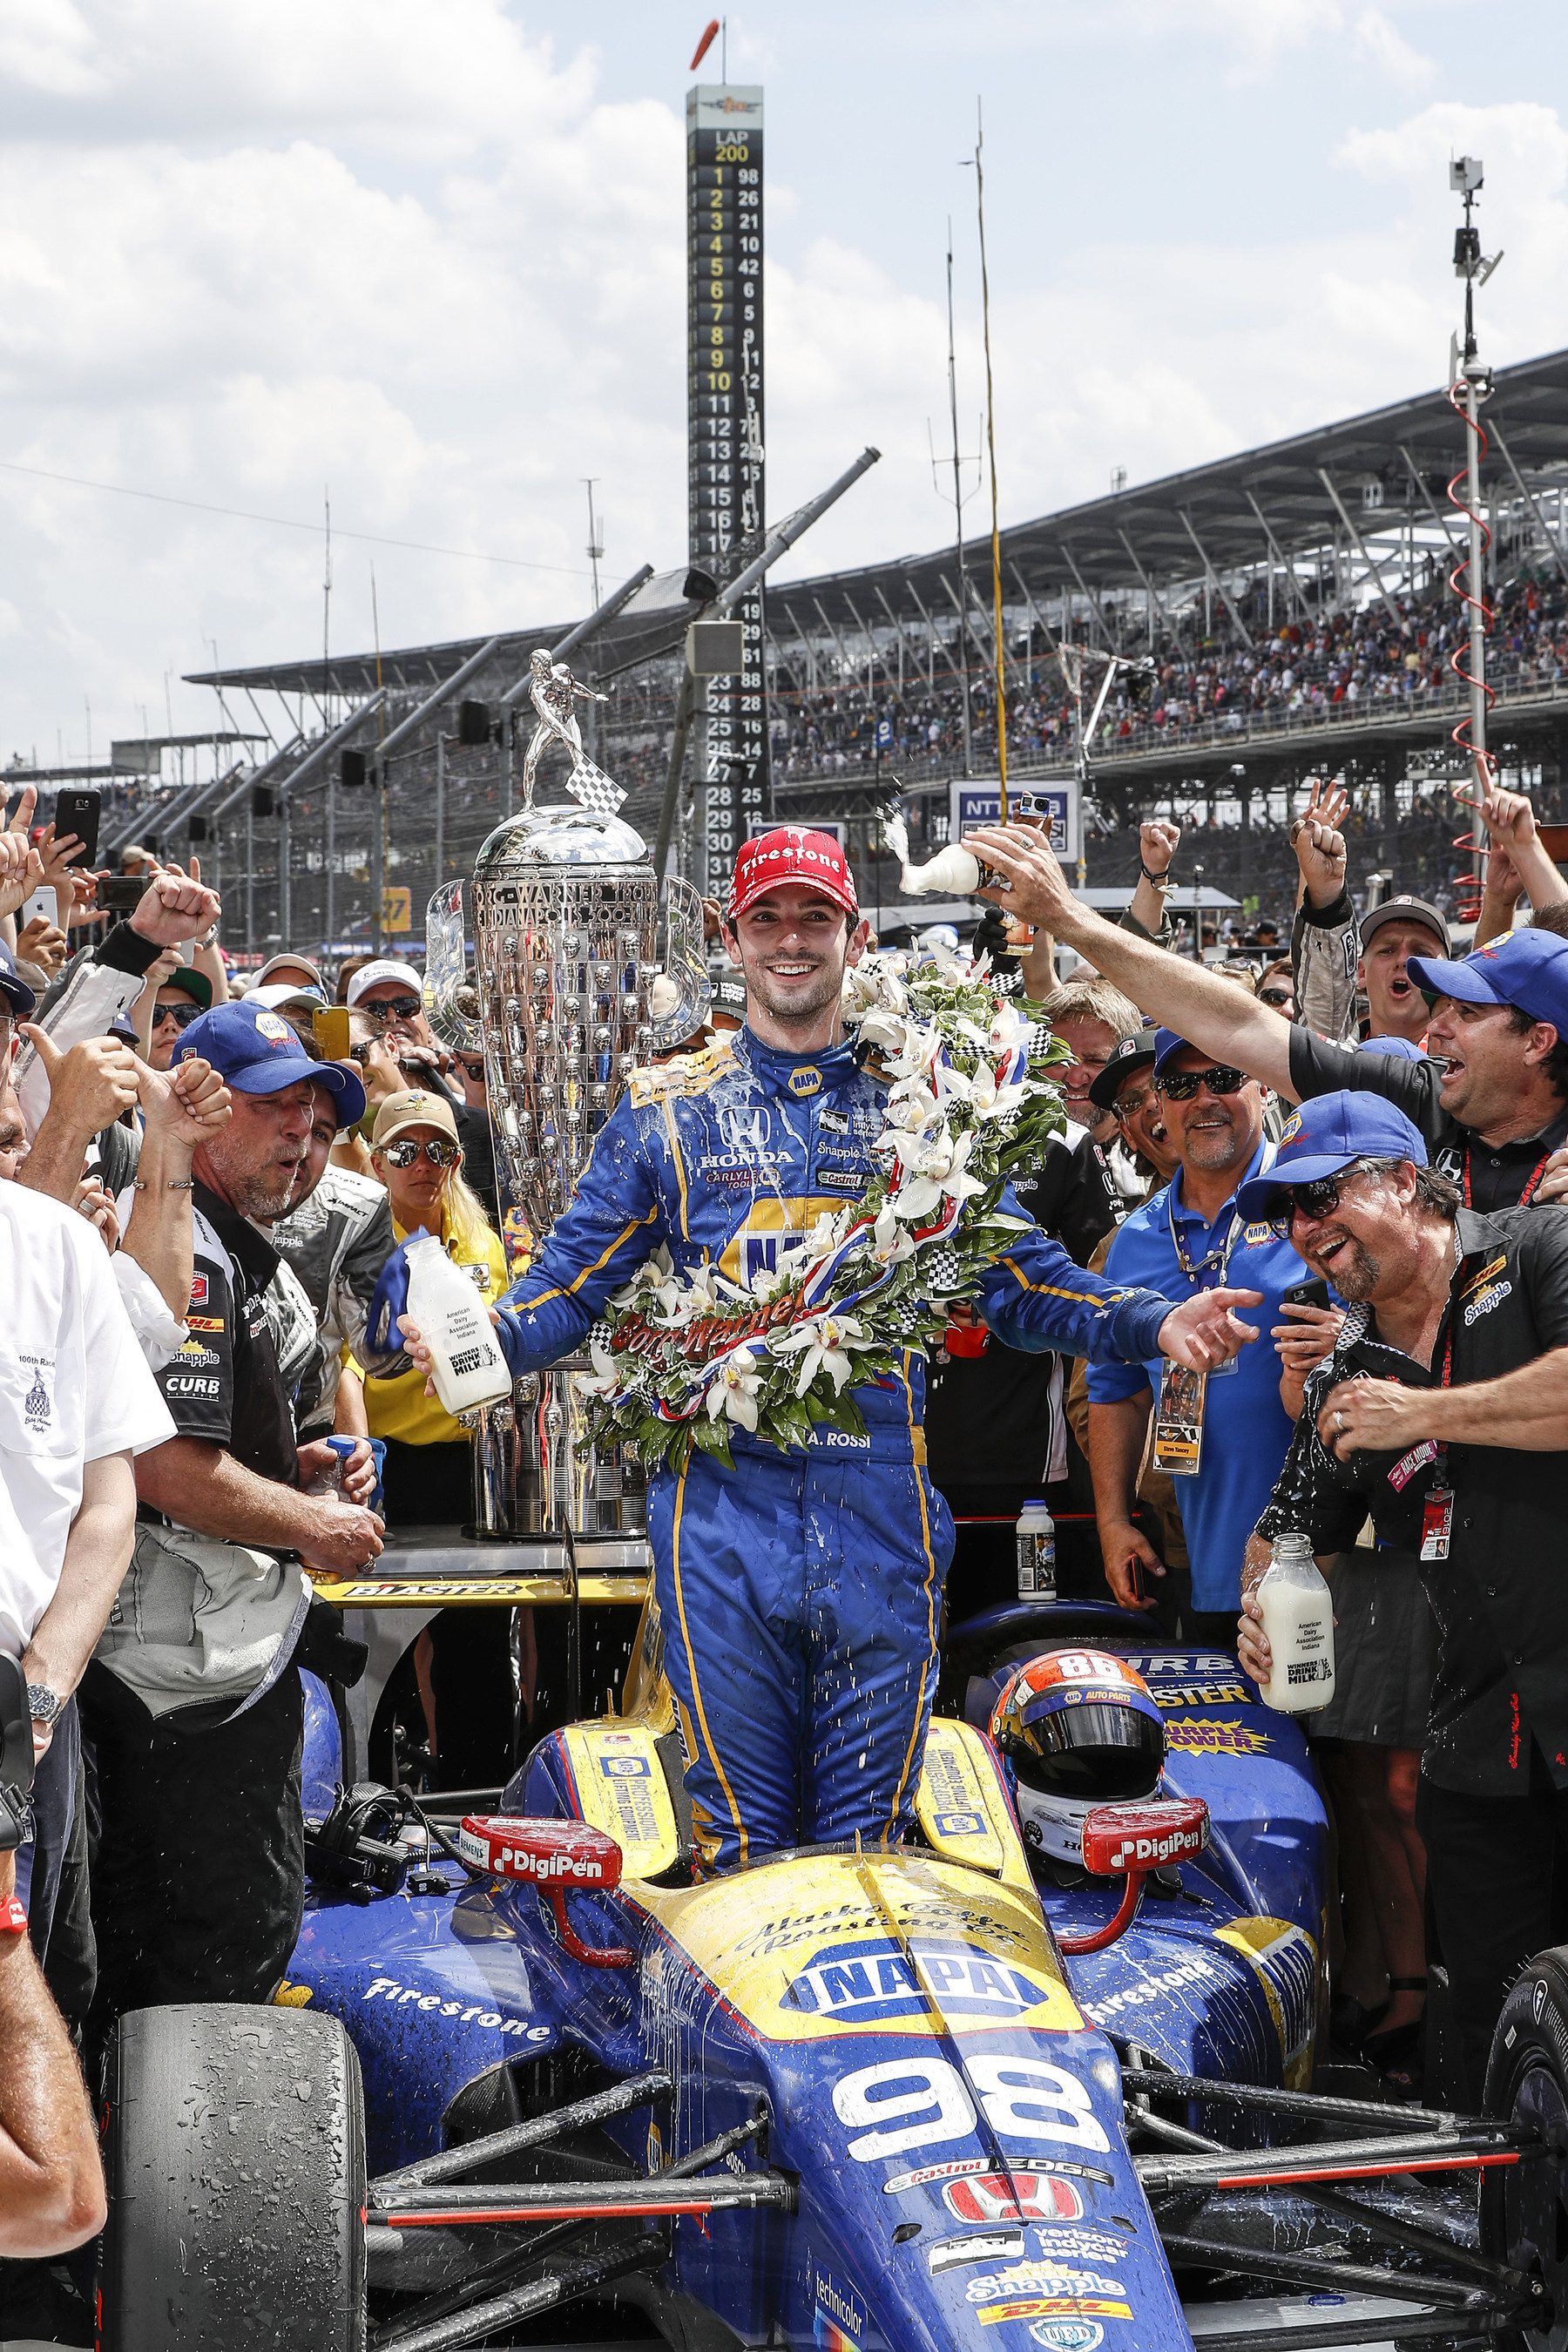 Rookie Rossi, Honda Win 100th Indianapolis 500